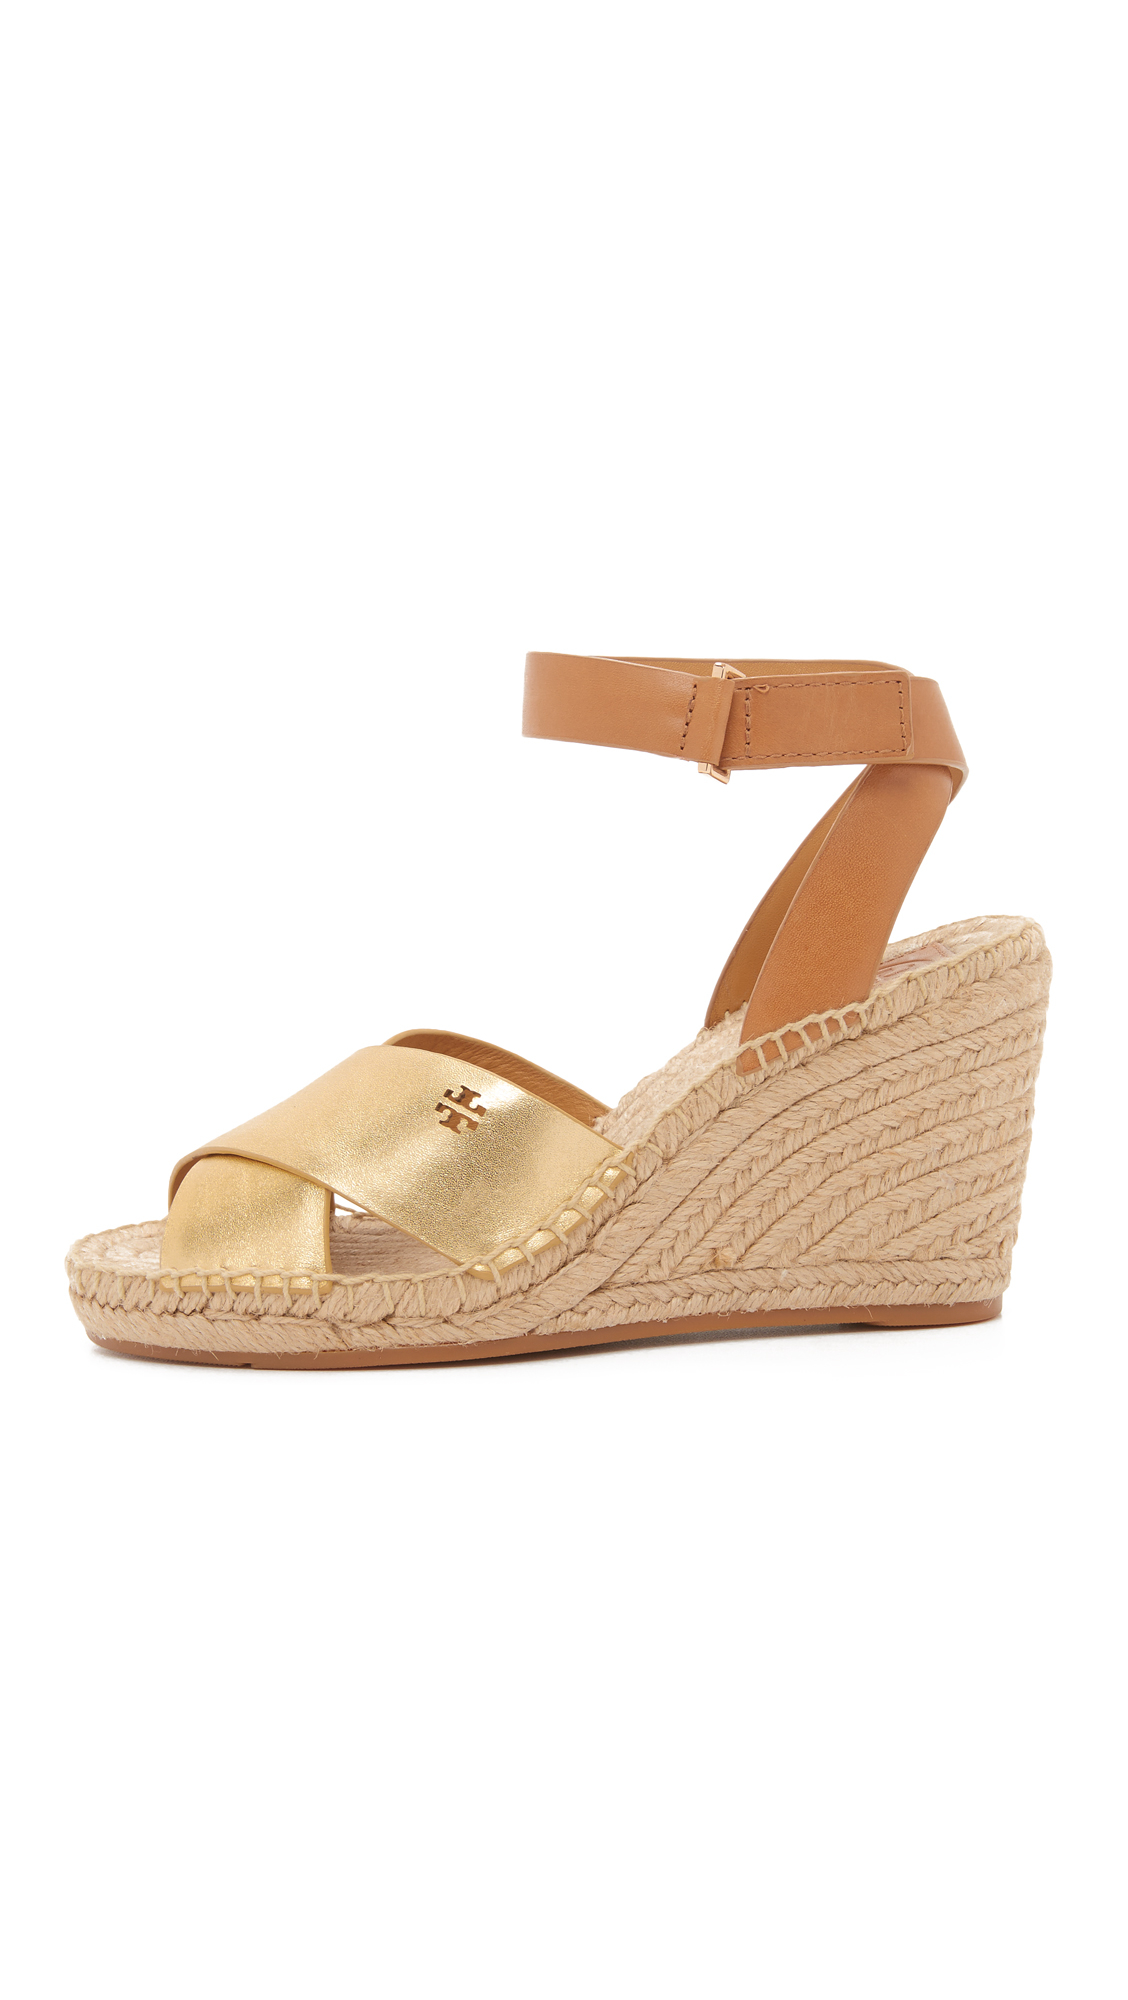 Lyst Tory Burch Bima Metallic Wedge Espadrilles In Brown